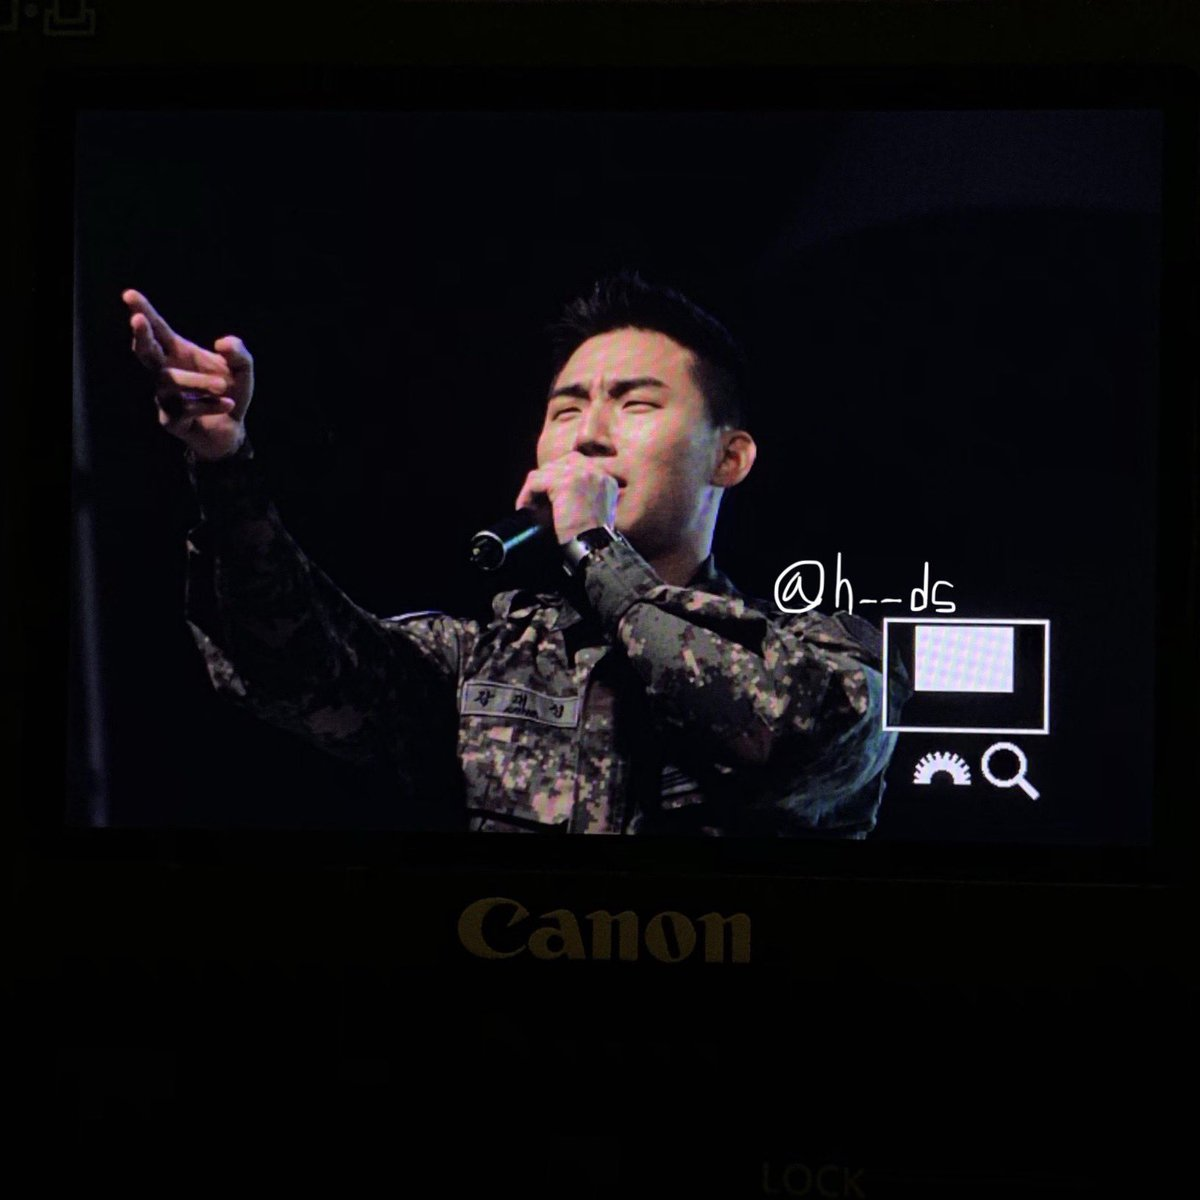 photos-videos-2019-04-26-bigbang-daesung-and-taeyang-at-city-of-daejeons-harmony-festival-day-1